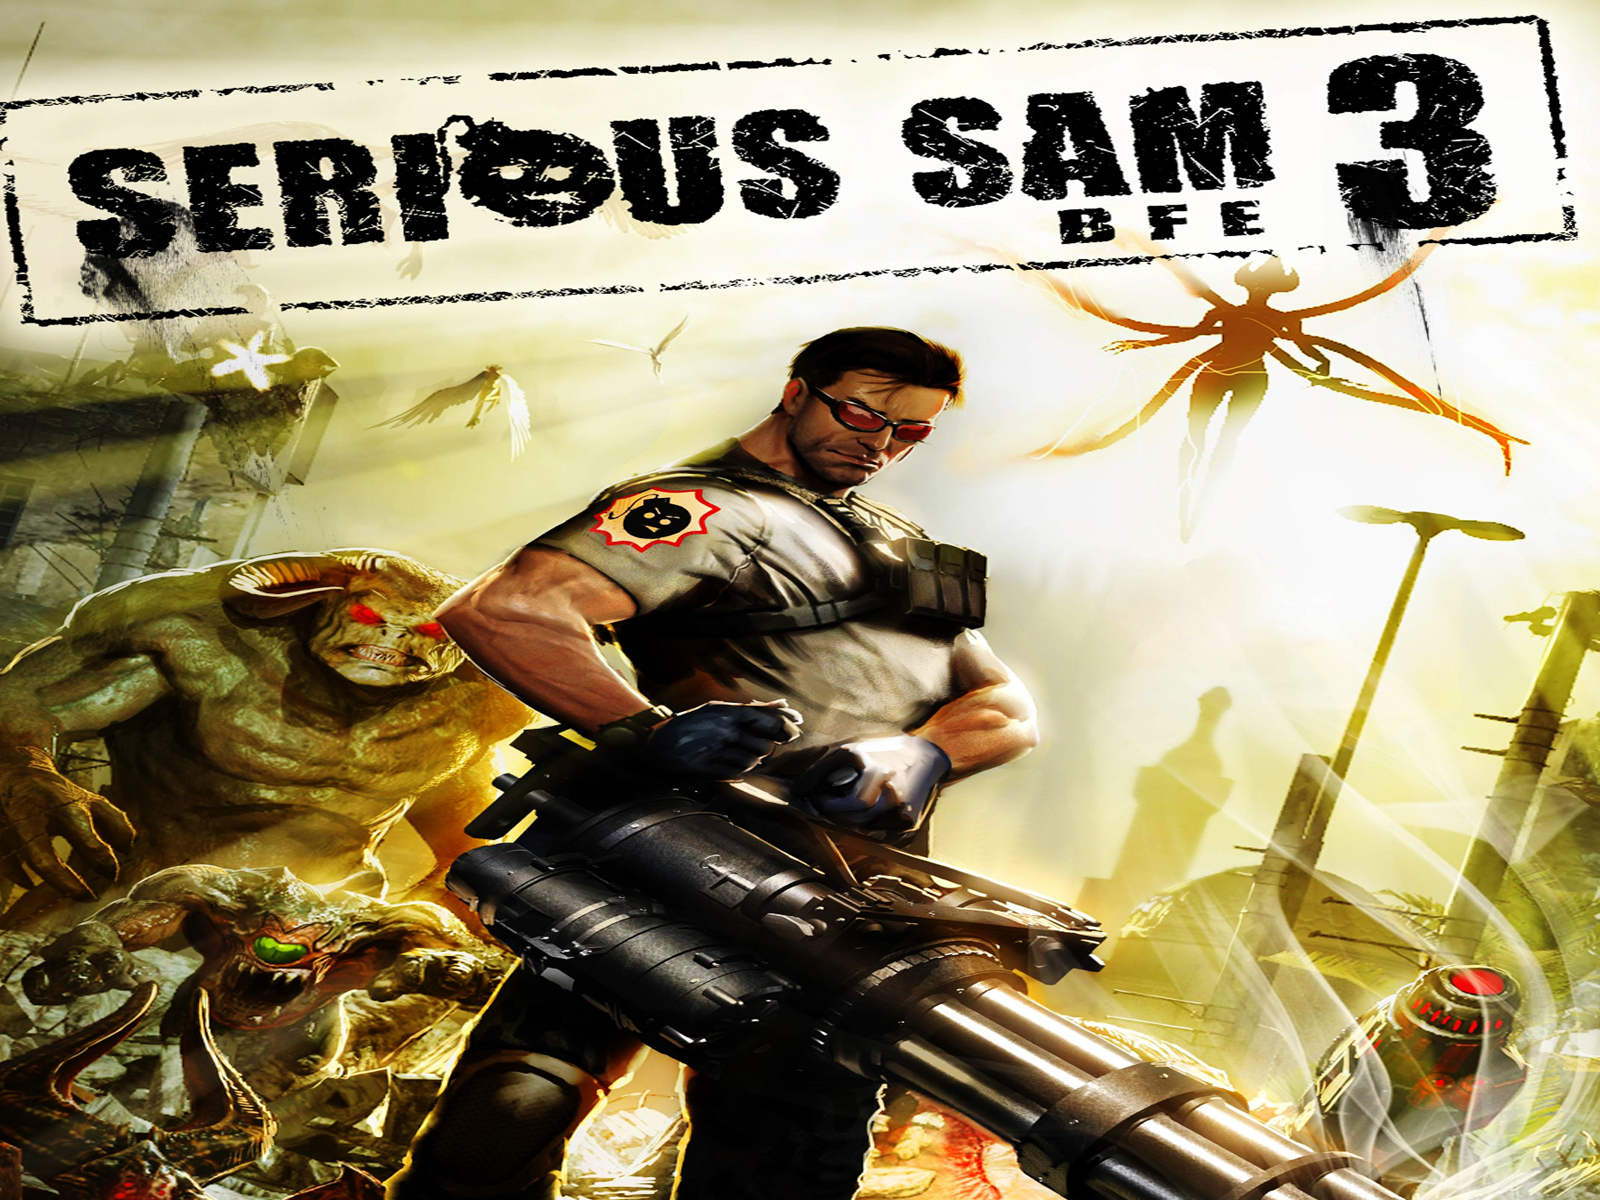 If you 2019ve played it, submit your rating for serious sam 3: bfe and share your review